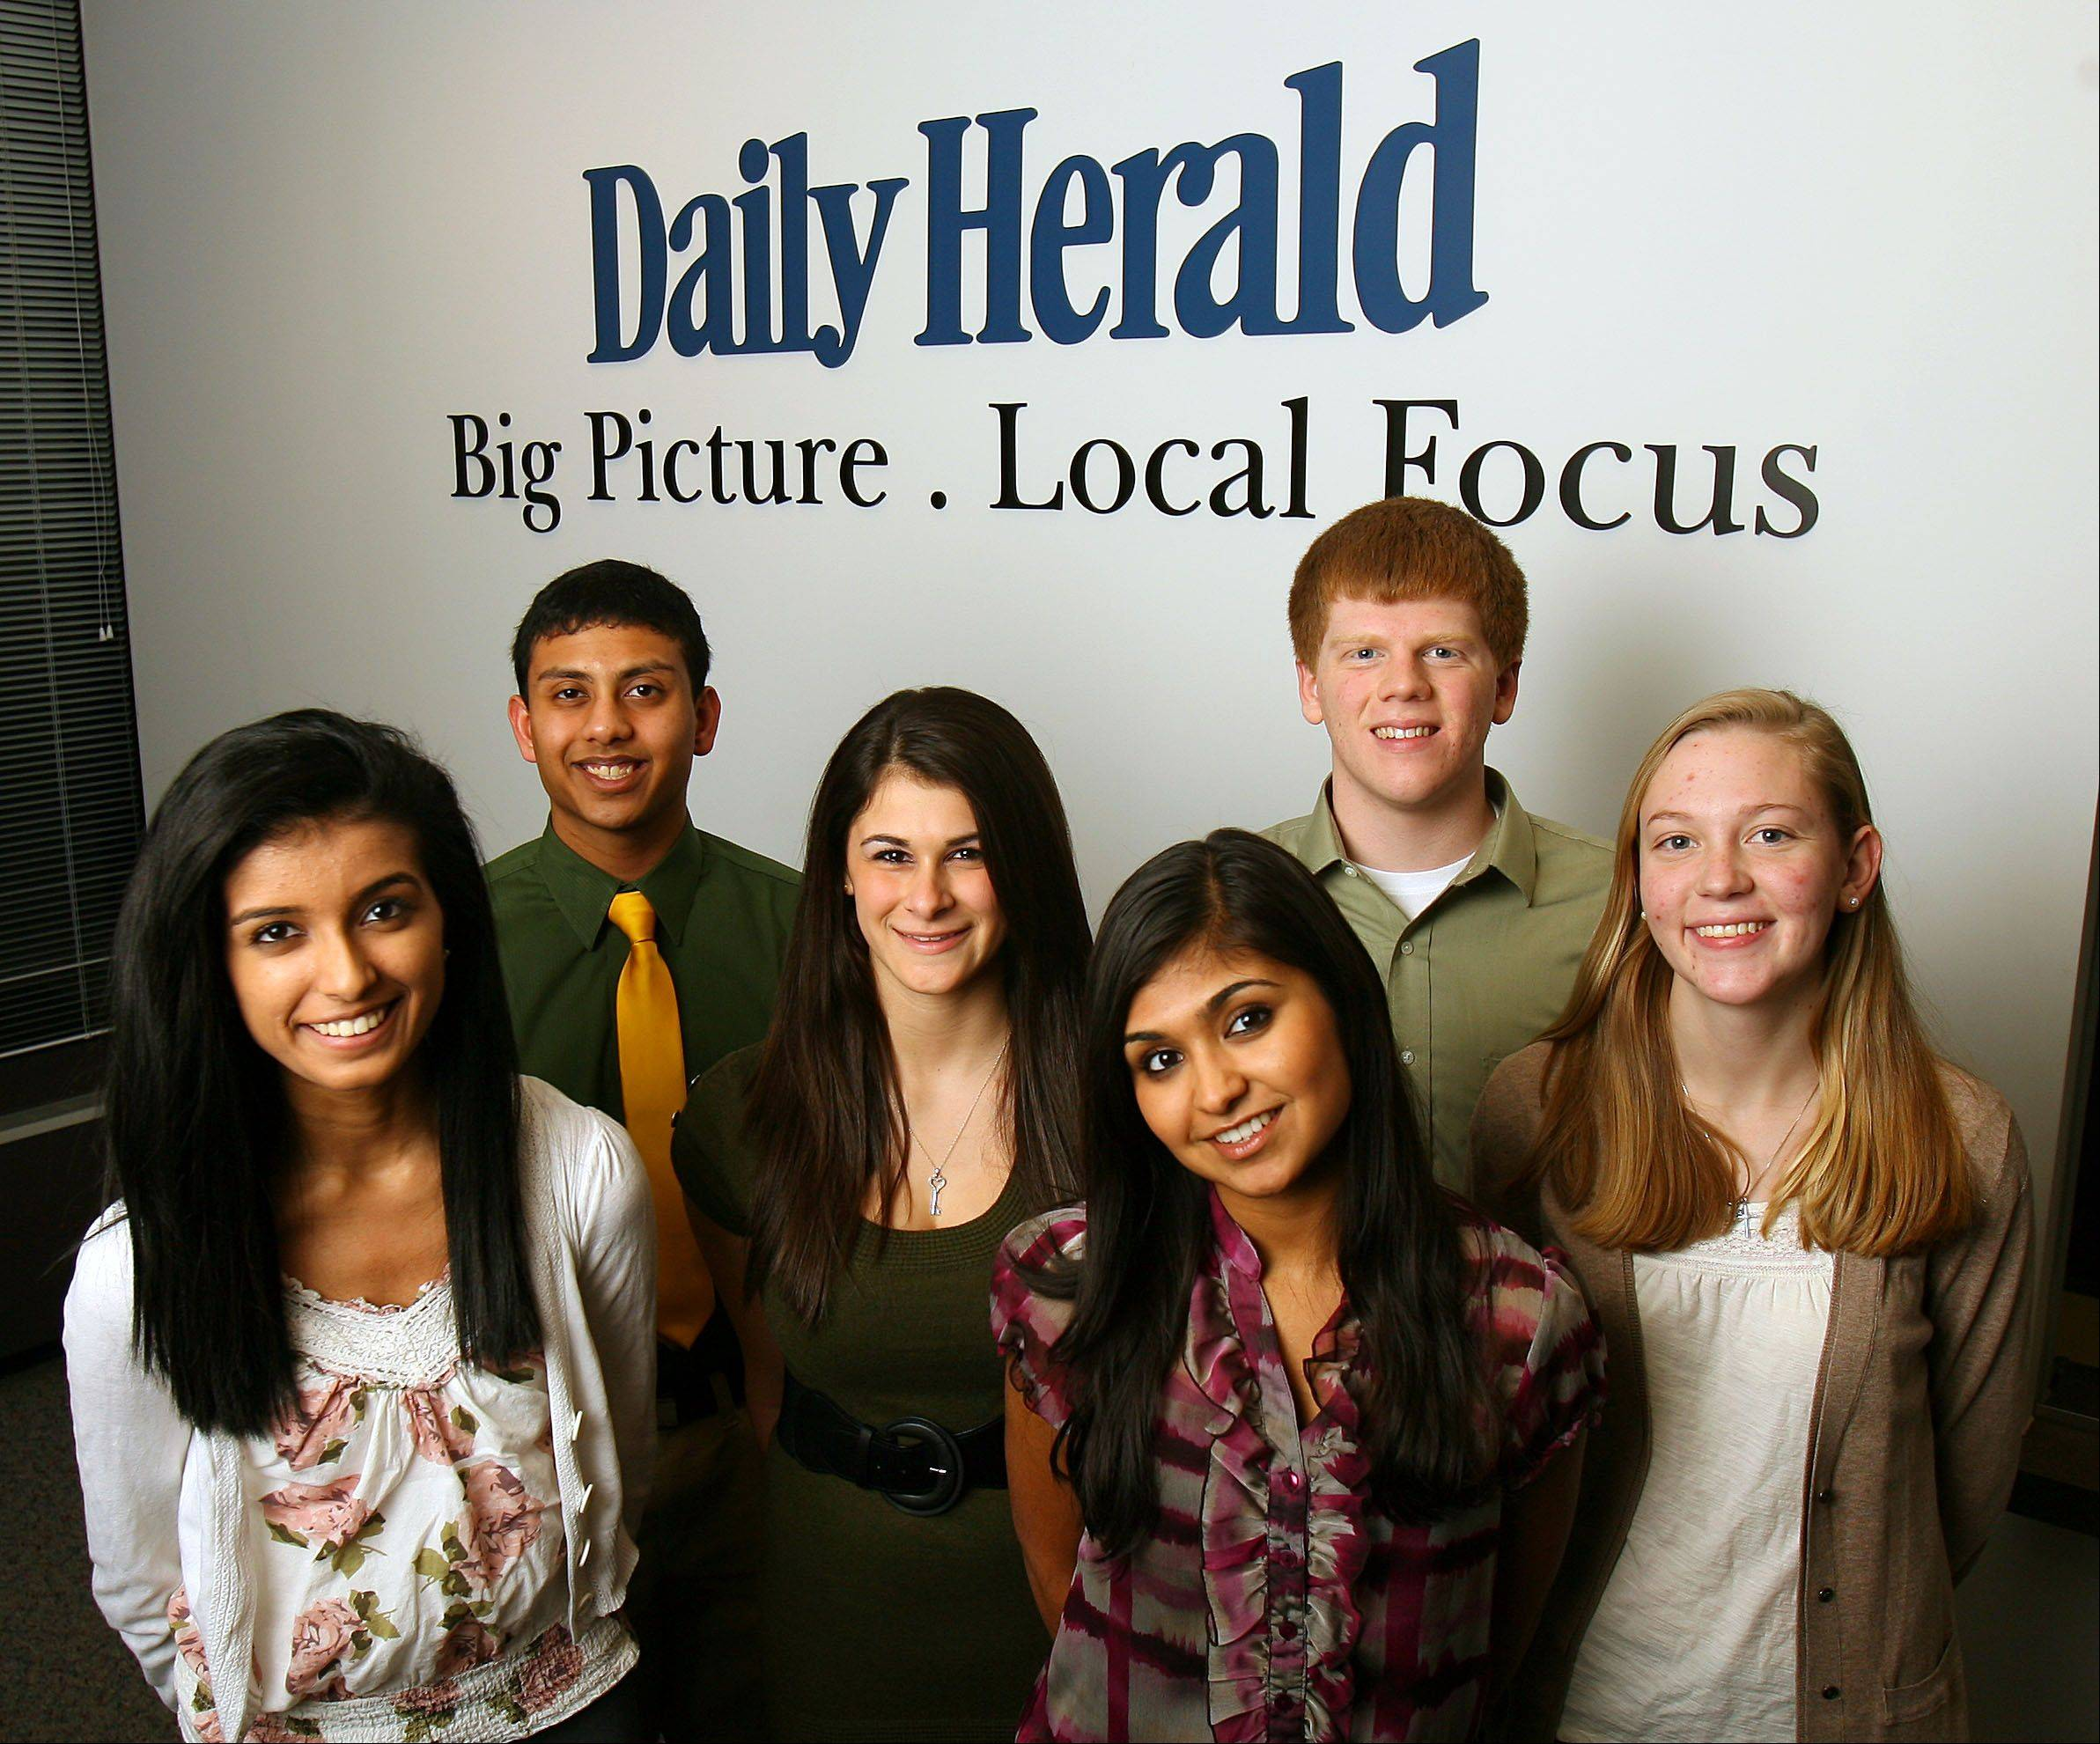 The 2011-12 Lake County Leadership Team, from left: Sonia Doshi, Adlai E. Stevenson High School; Abhiram Sanka, Adlai E. Stevenson High School; Bianca Tomassetti, Libertyville High School; Sanchita Agrawal, Vernon Hills High School; William Hennessy, Warren Township High School; Megan Ewan, Lake Zurich High School. Not pictured: Seamus Quilty and Katie Skorcz, both of Carmel Catholic High School; Magdalena Cychowski, Warren Township High School and Kate Lee, Vernon Hills High School.